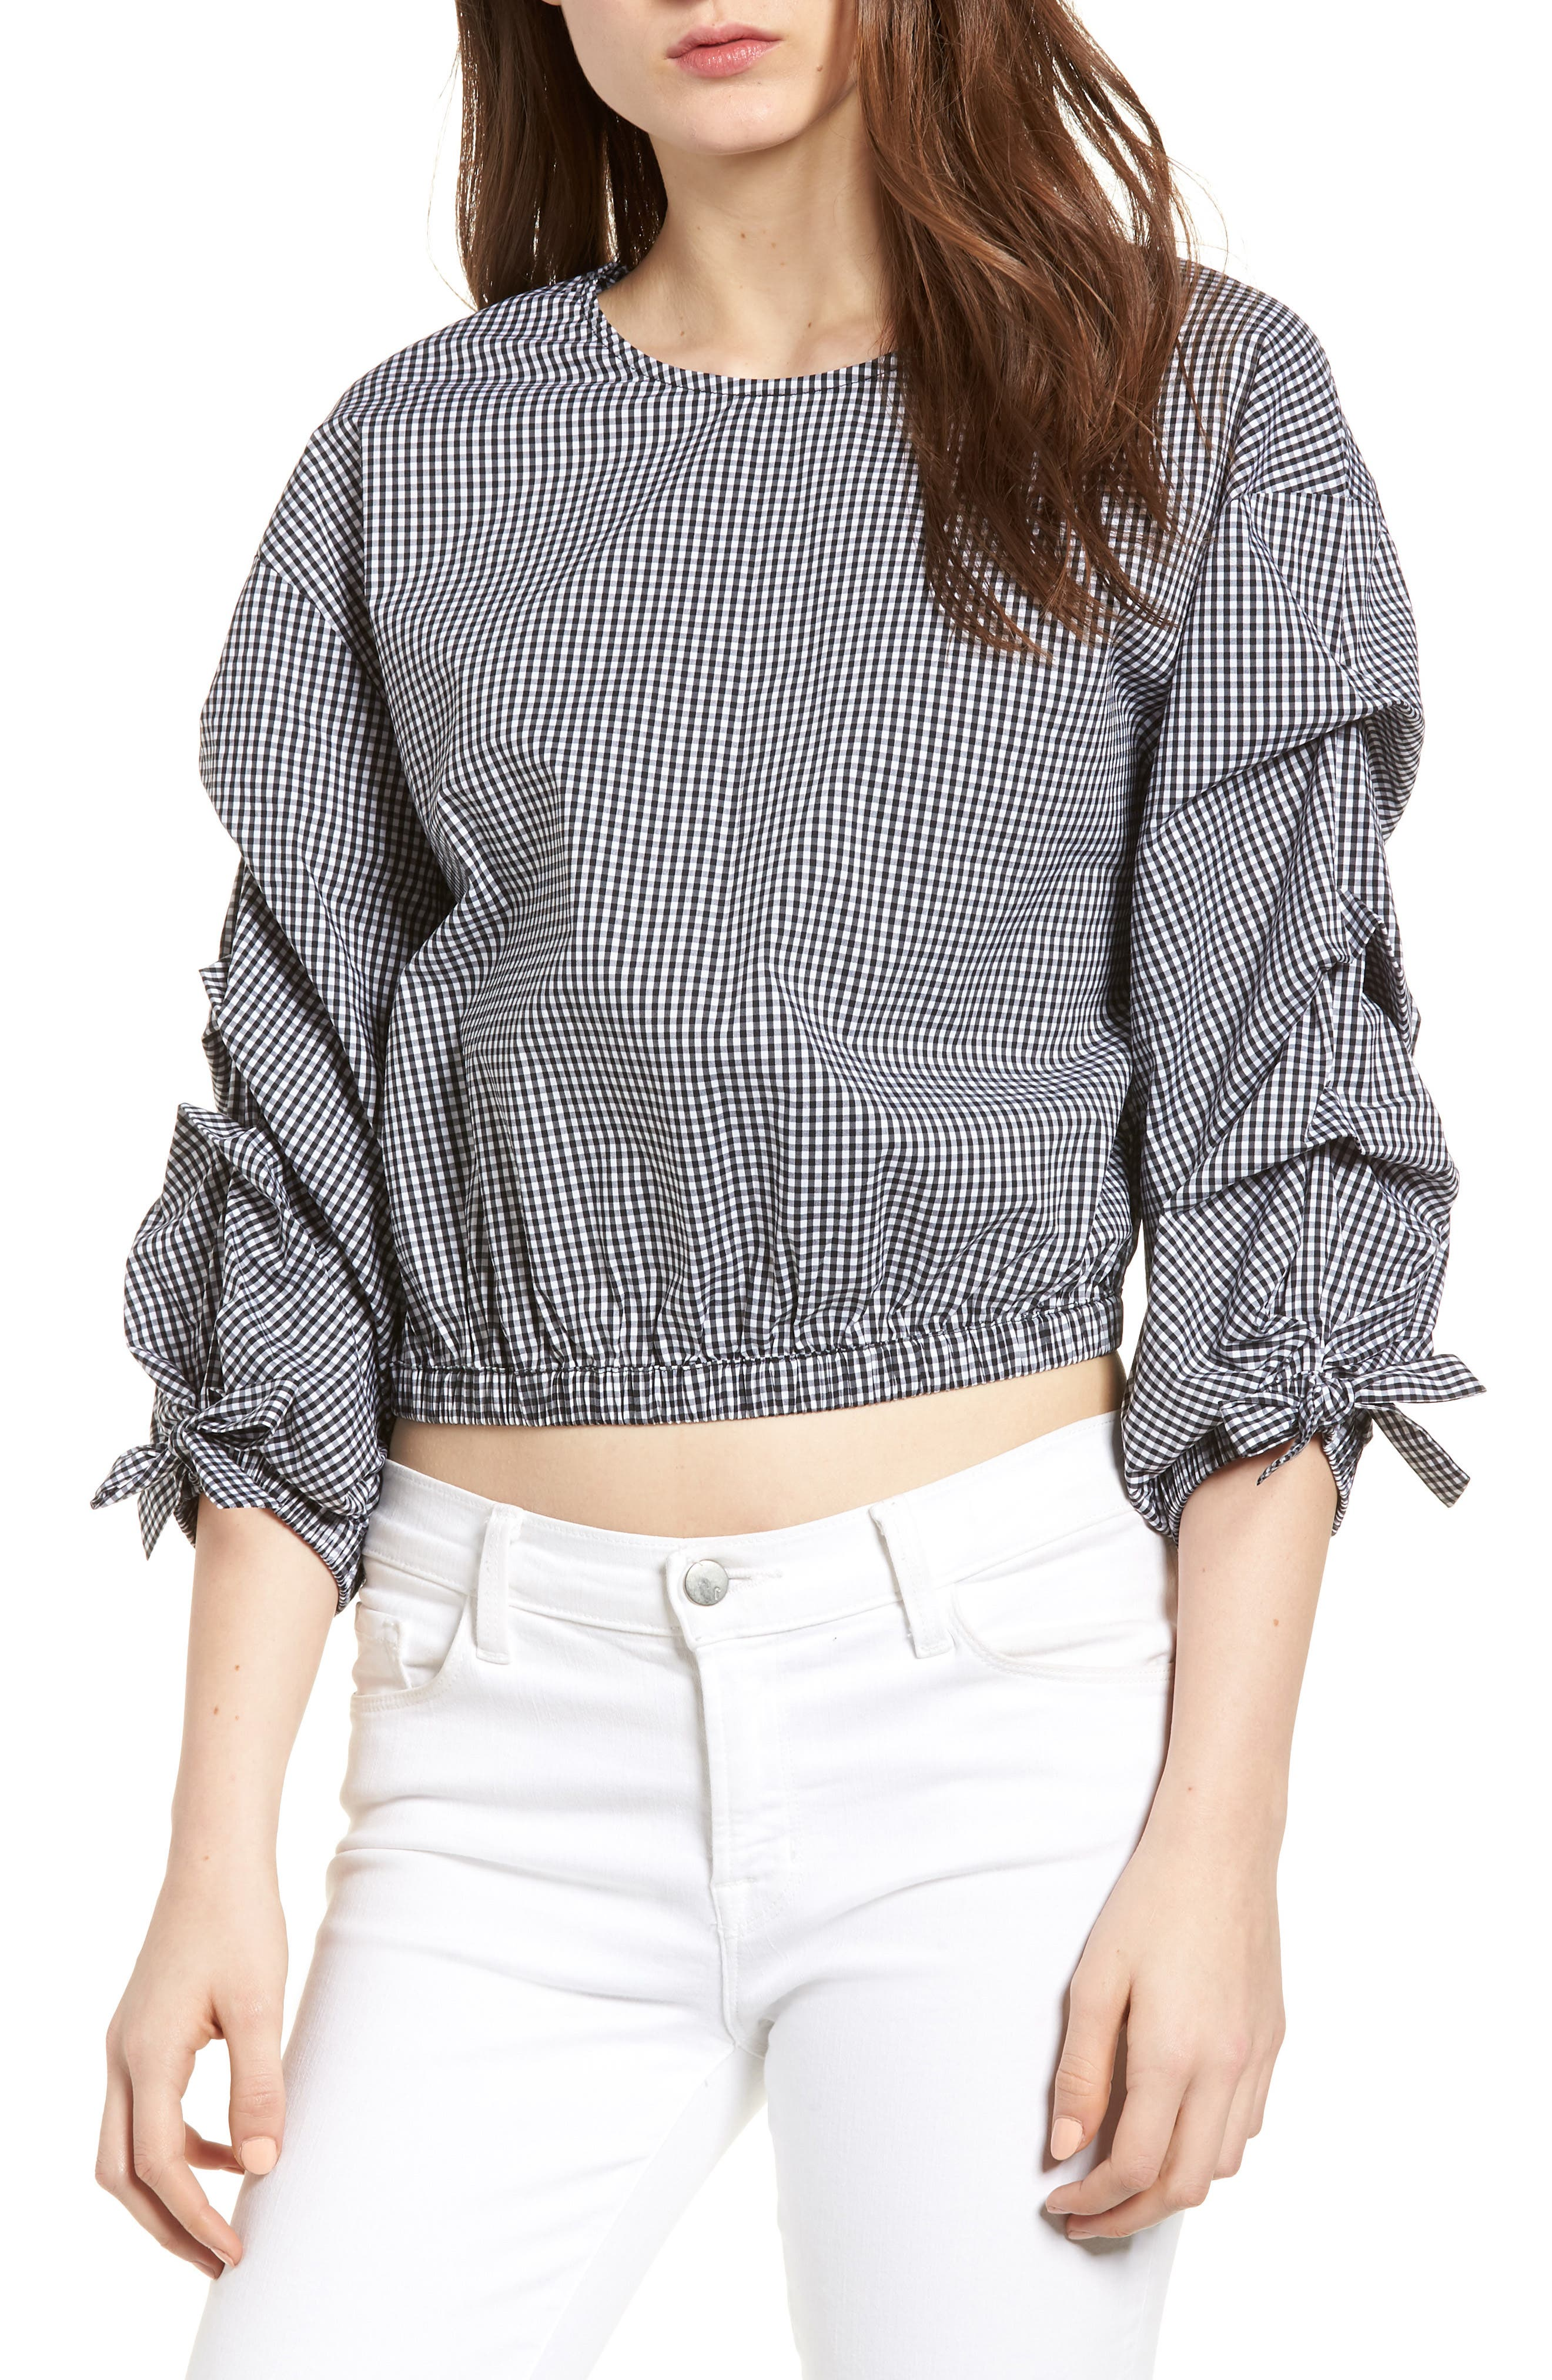 Bishop + Young Ruched Sleeve Blouse,                         Main,                         color, Gingham